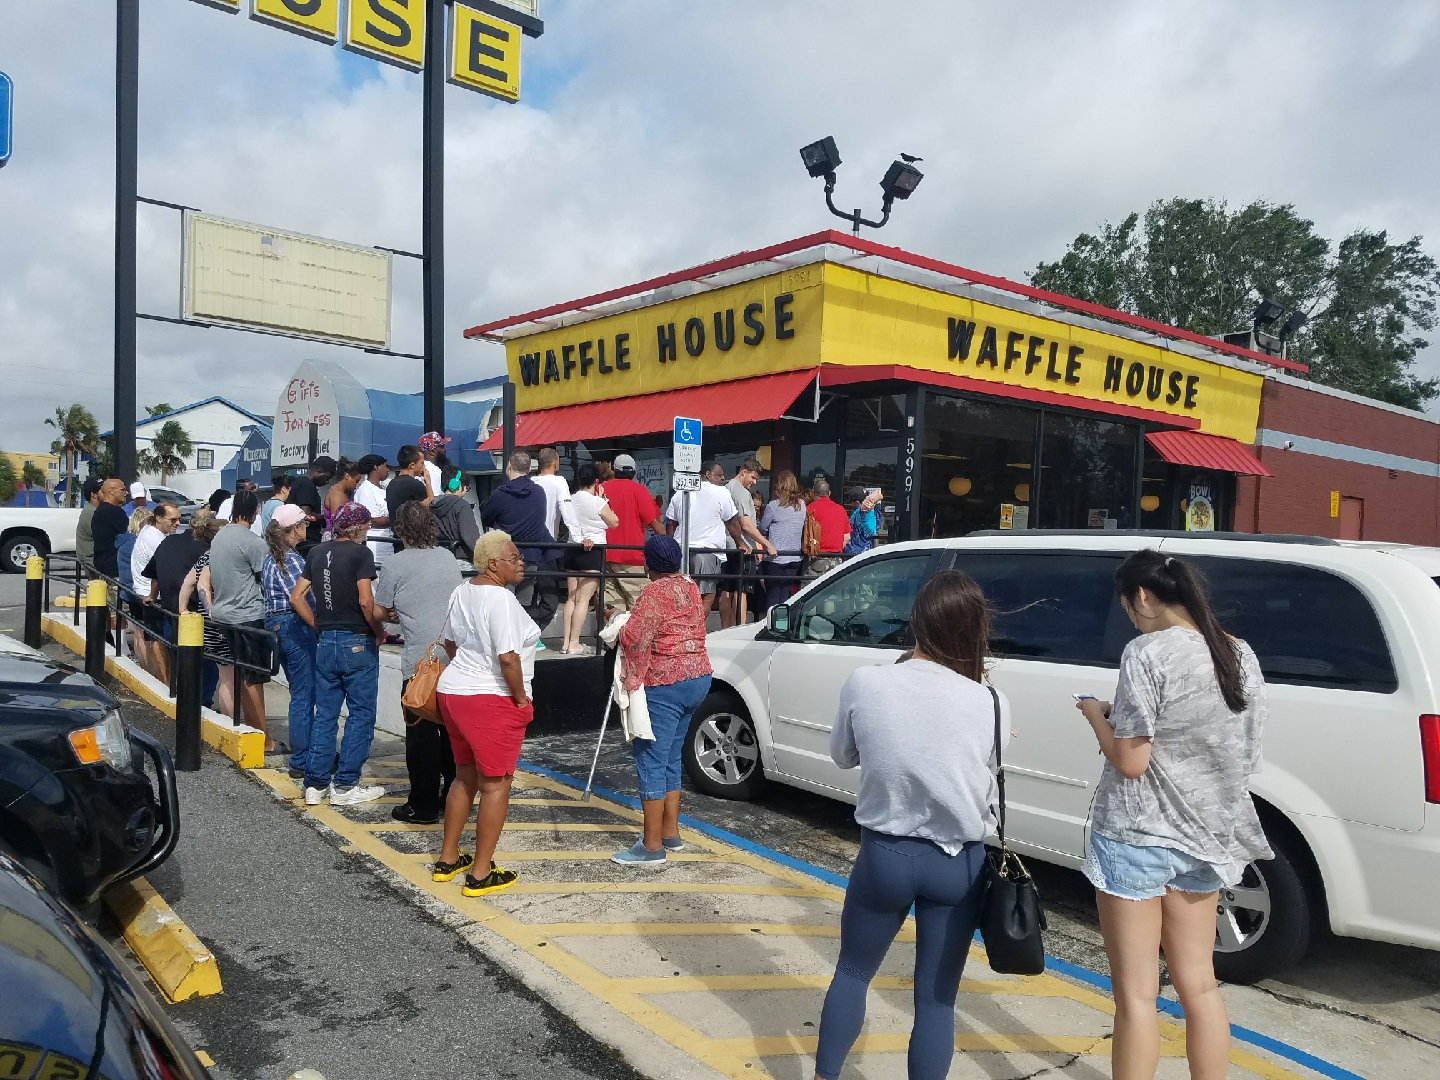 event at Waffle House restaurant